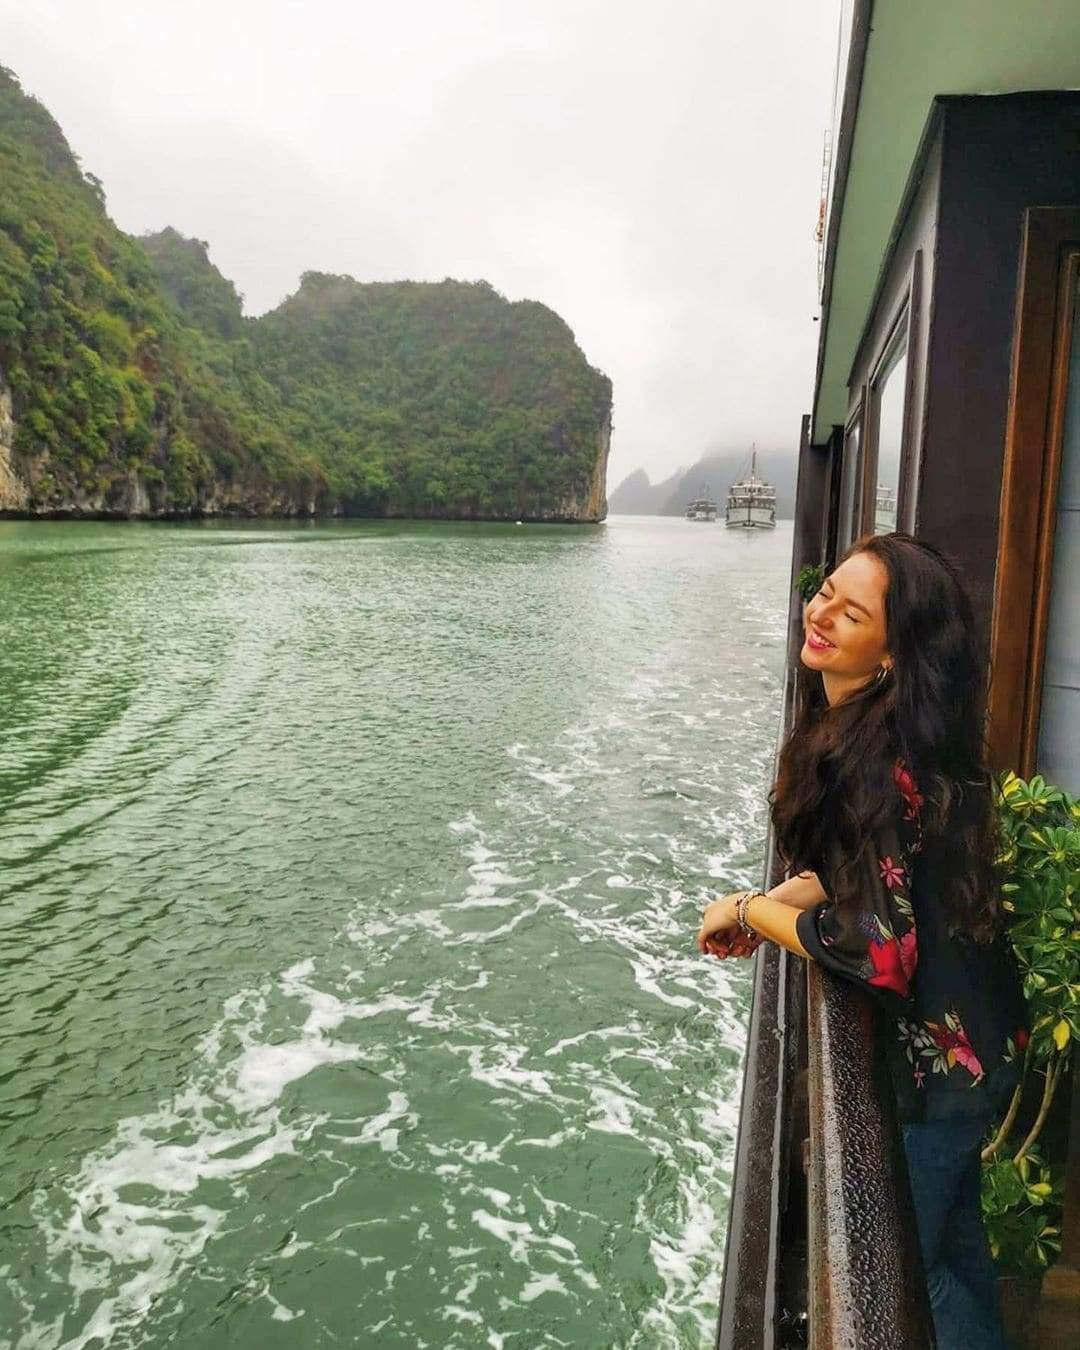 Top 10 things on the checklist of what to pack for Halong cruise